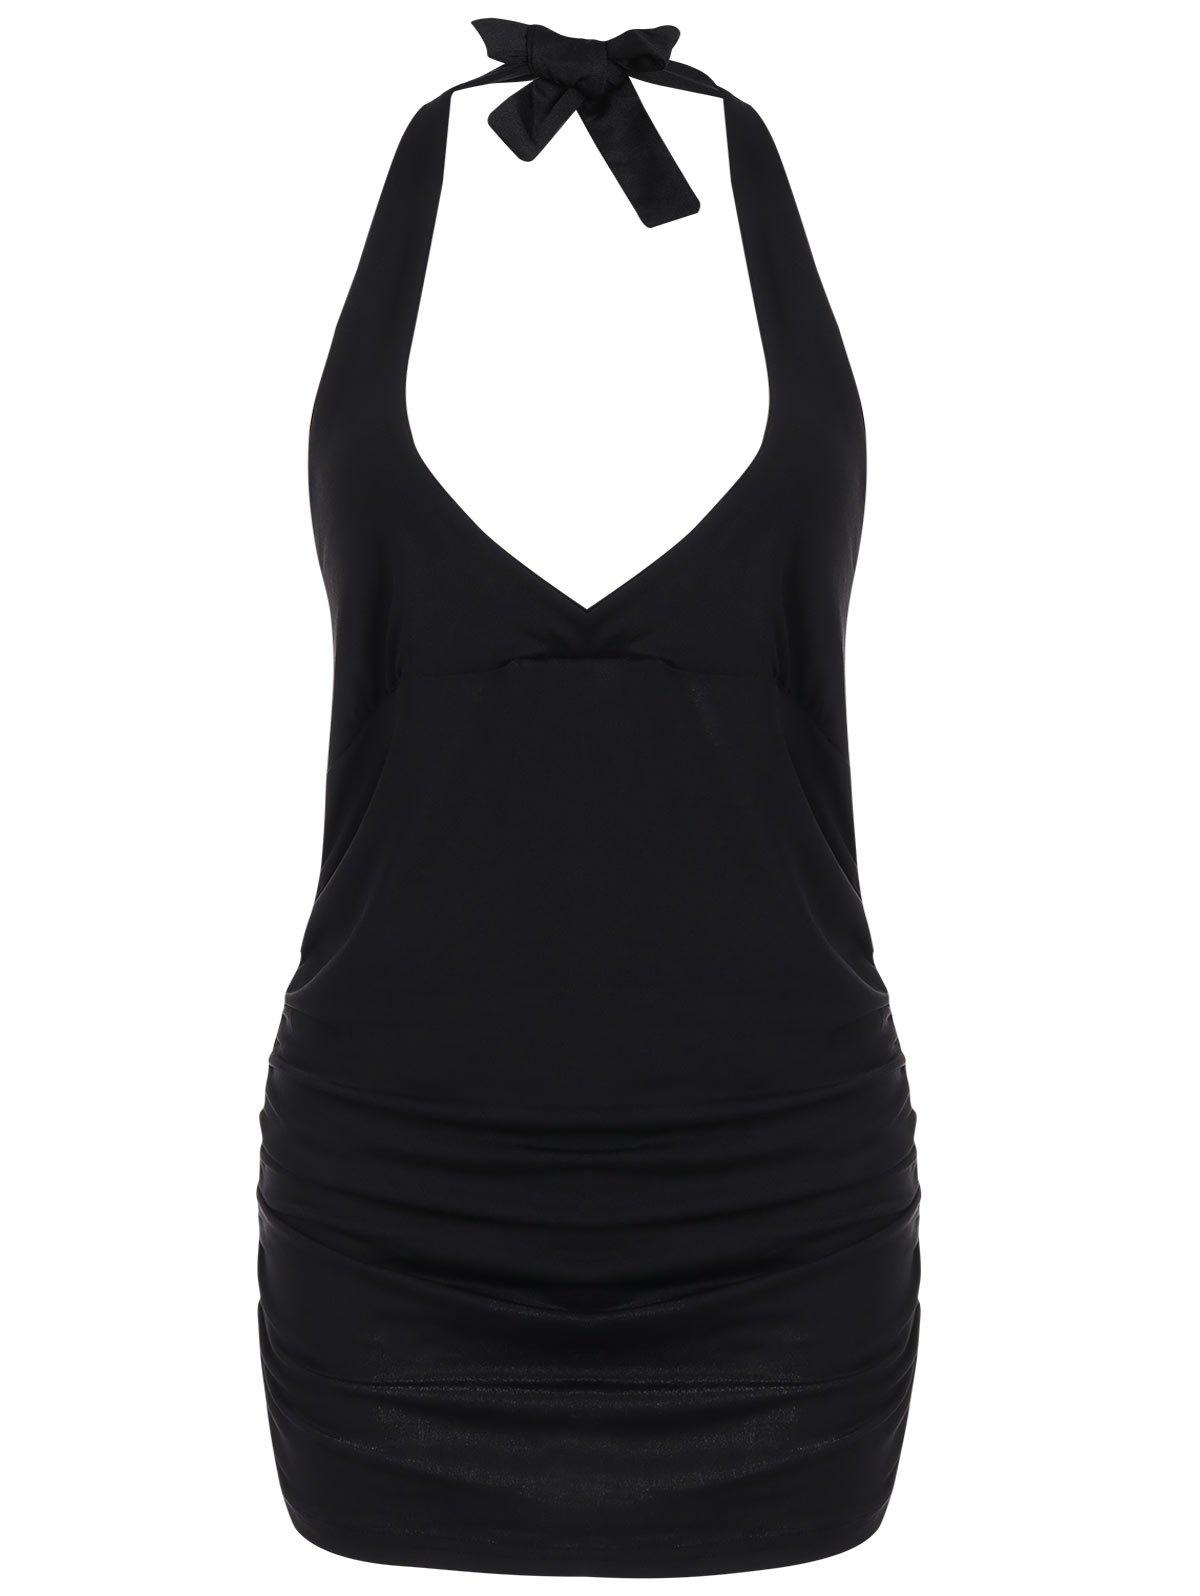 Halter Low Cut Backless Camisole - BLACK S